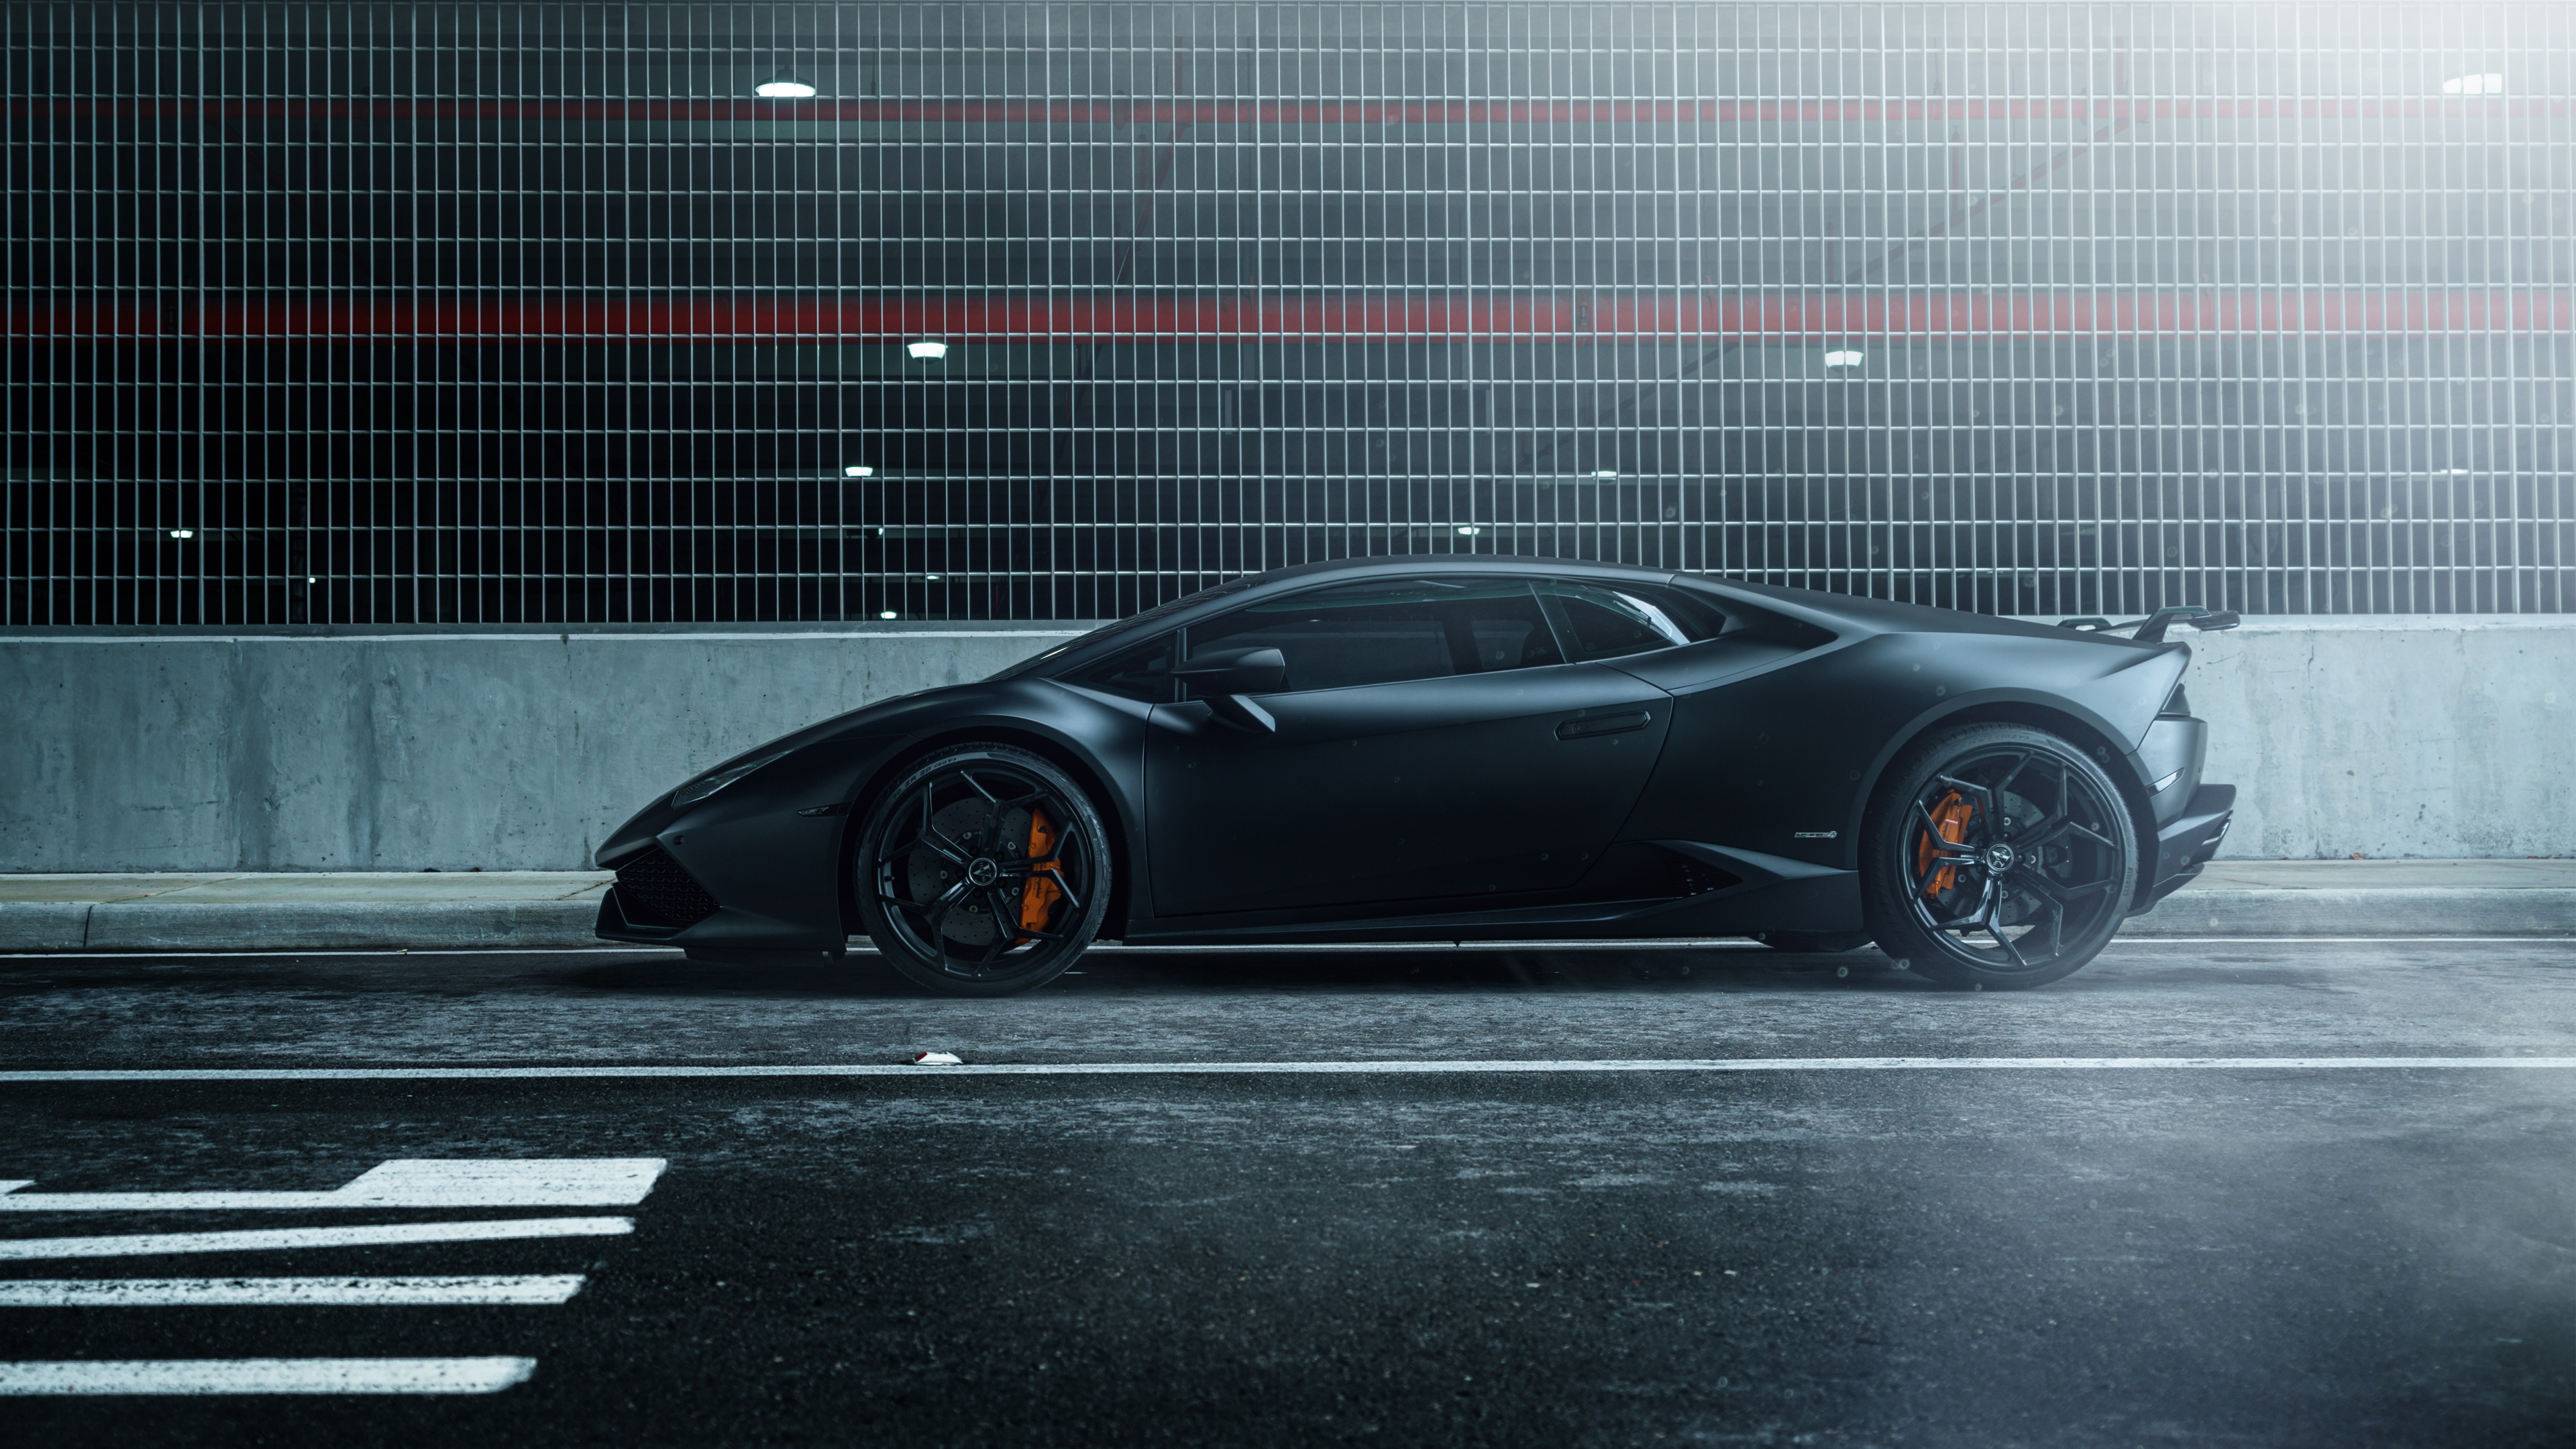 Lamborghini Huracan Vellano MC Matte Black 4K Wallpaper HD Car